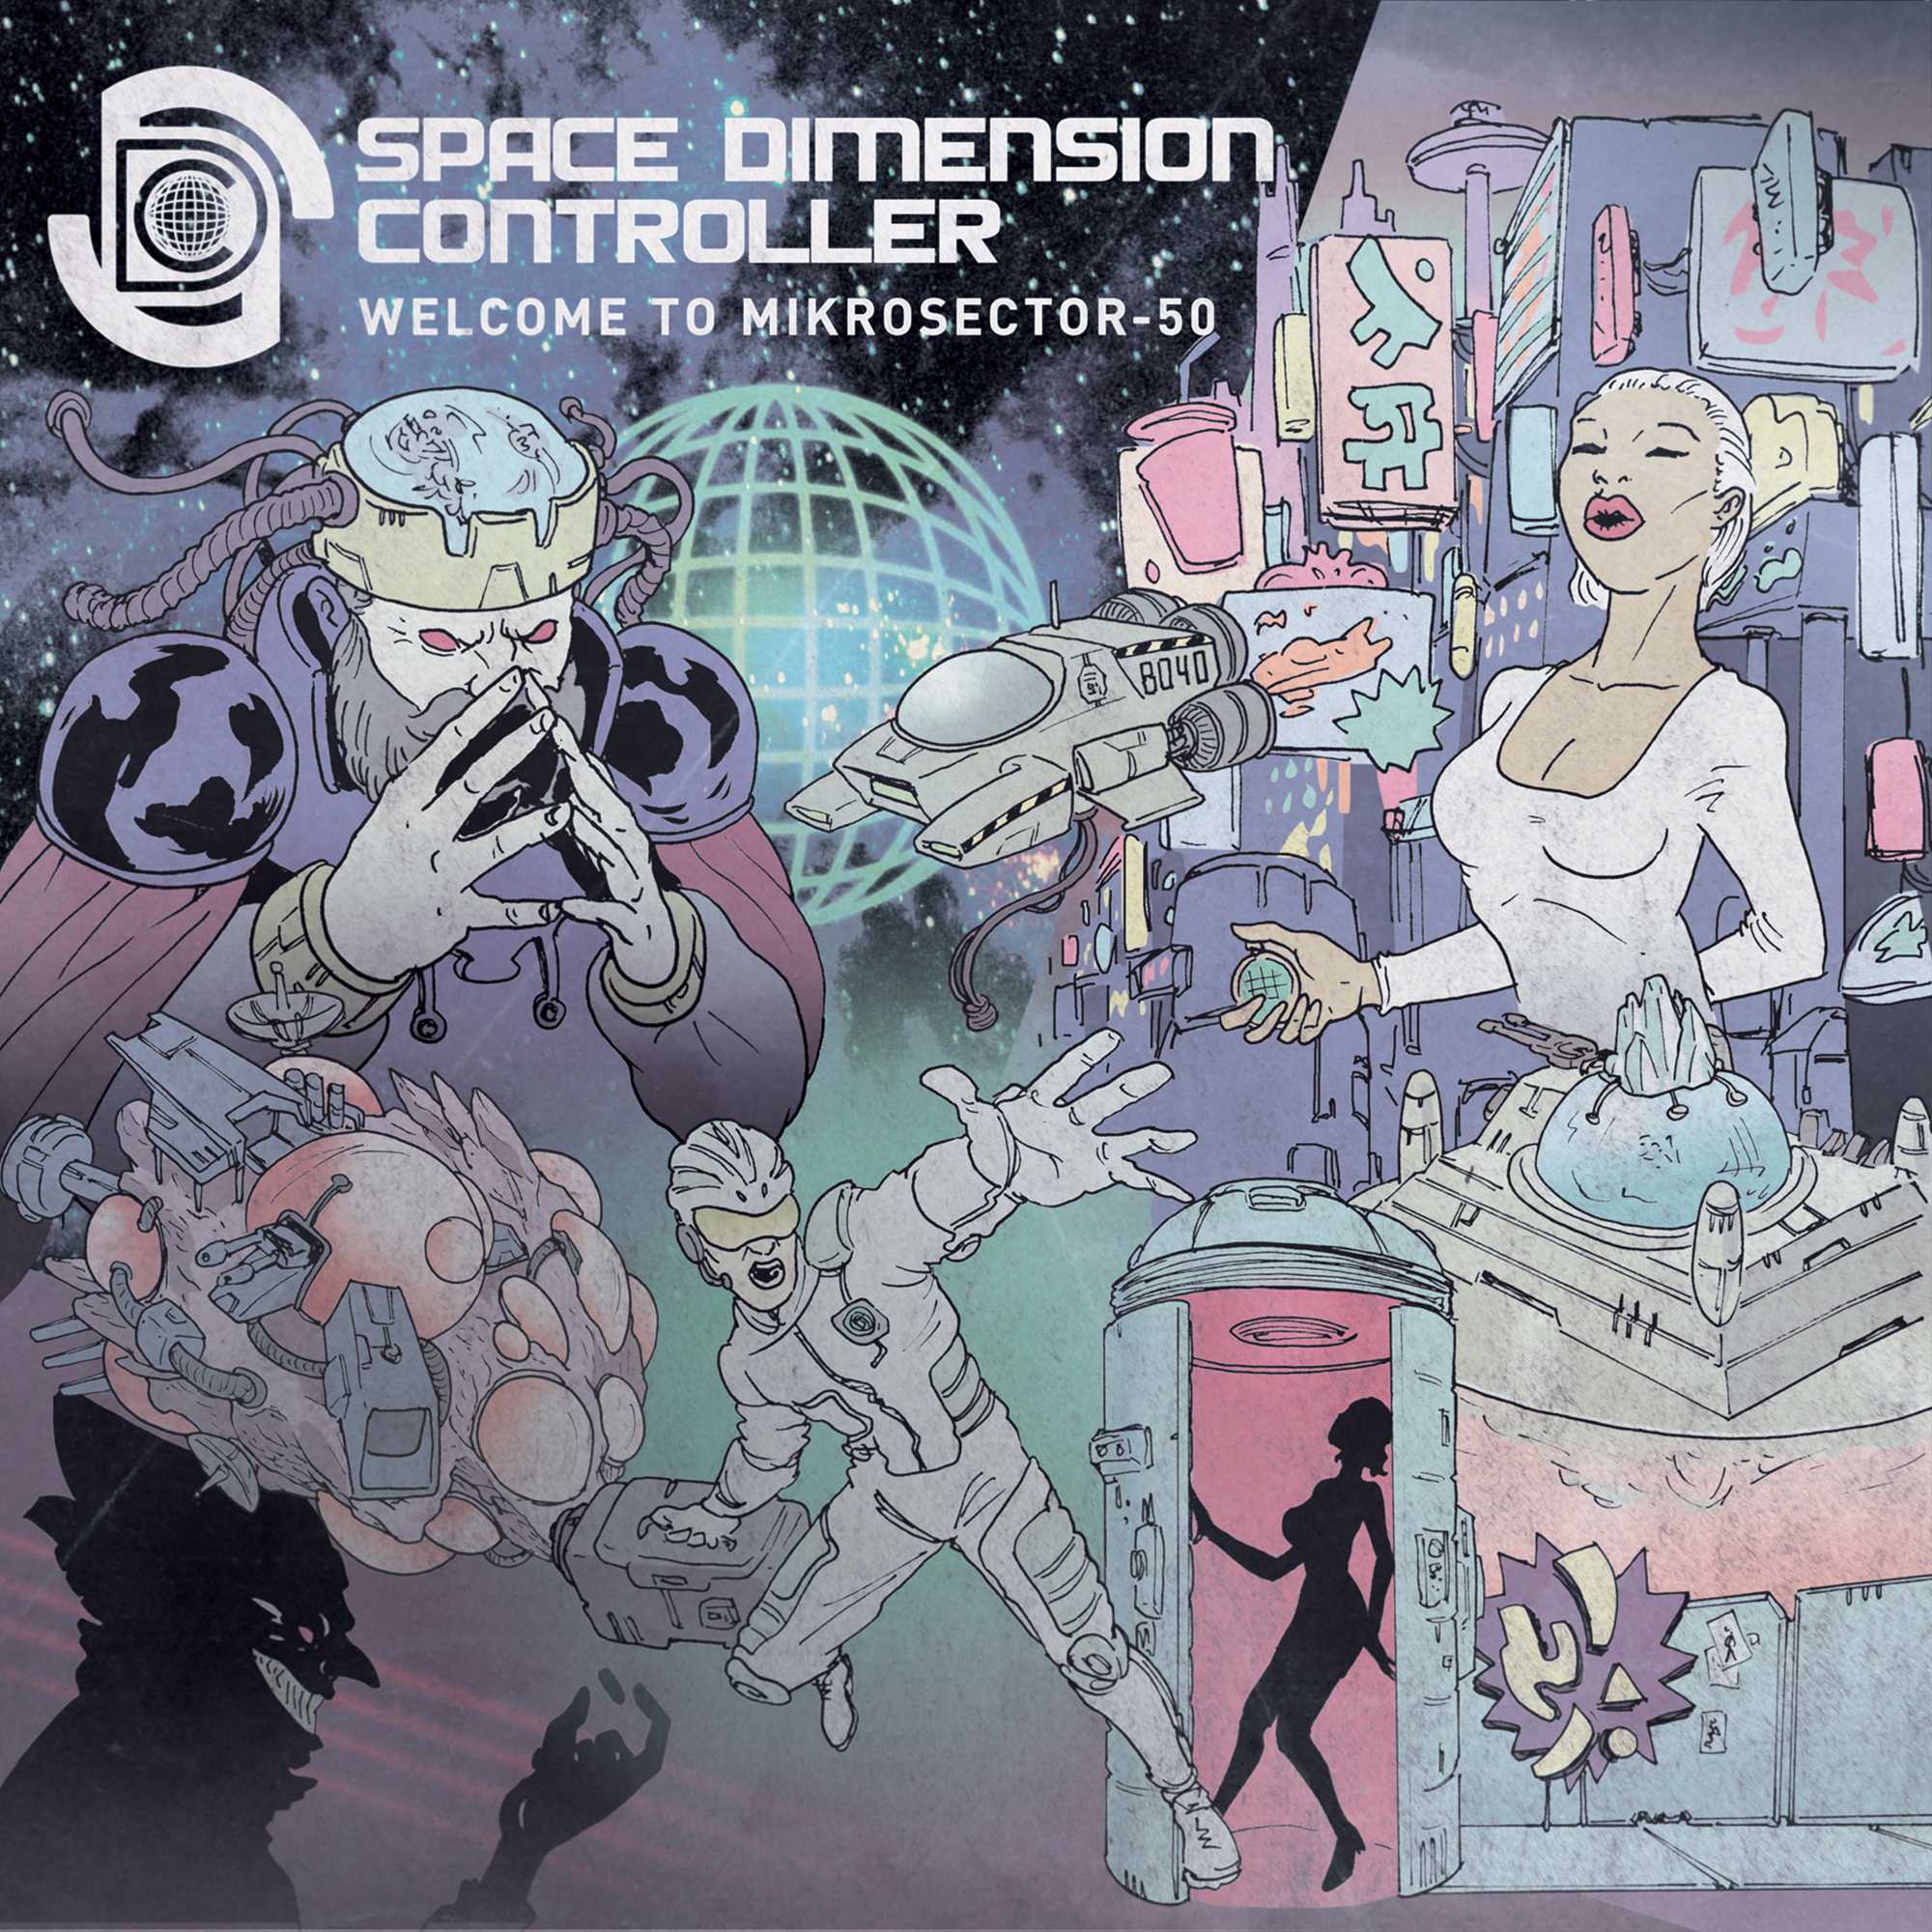 Space Dimension Controller – Welcome to Mikrosector-50